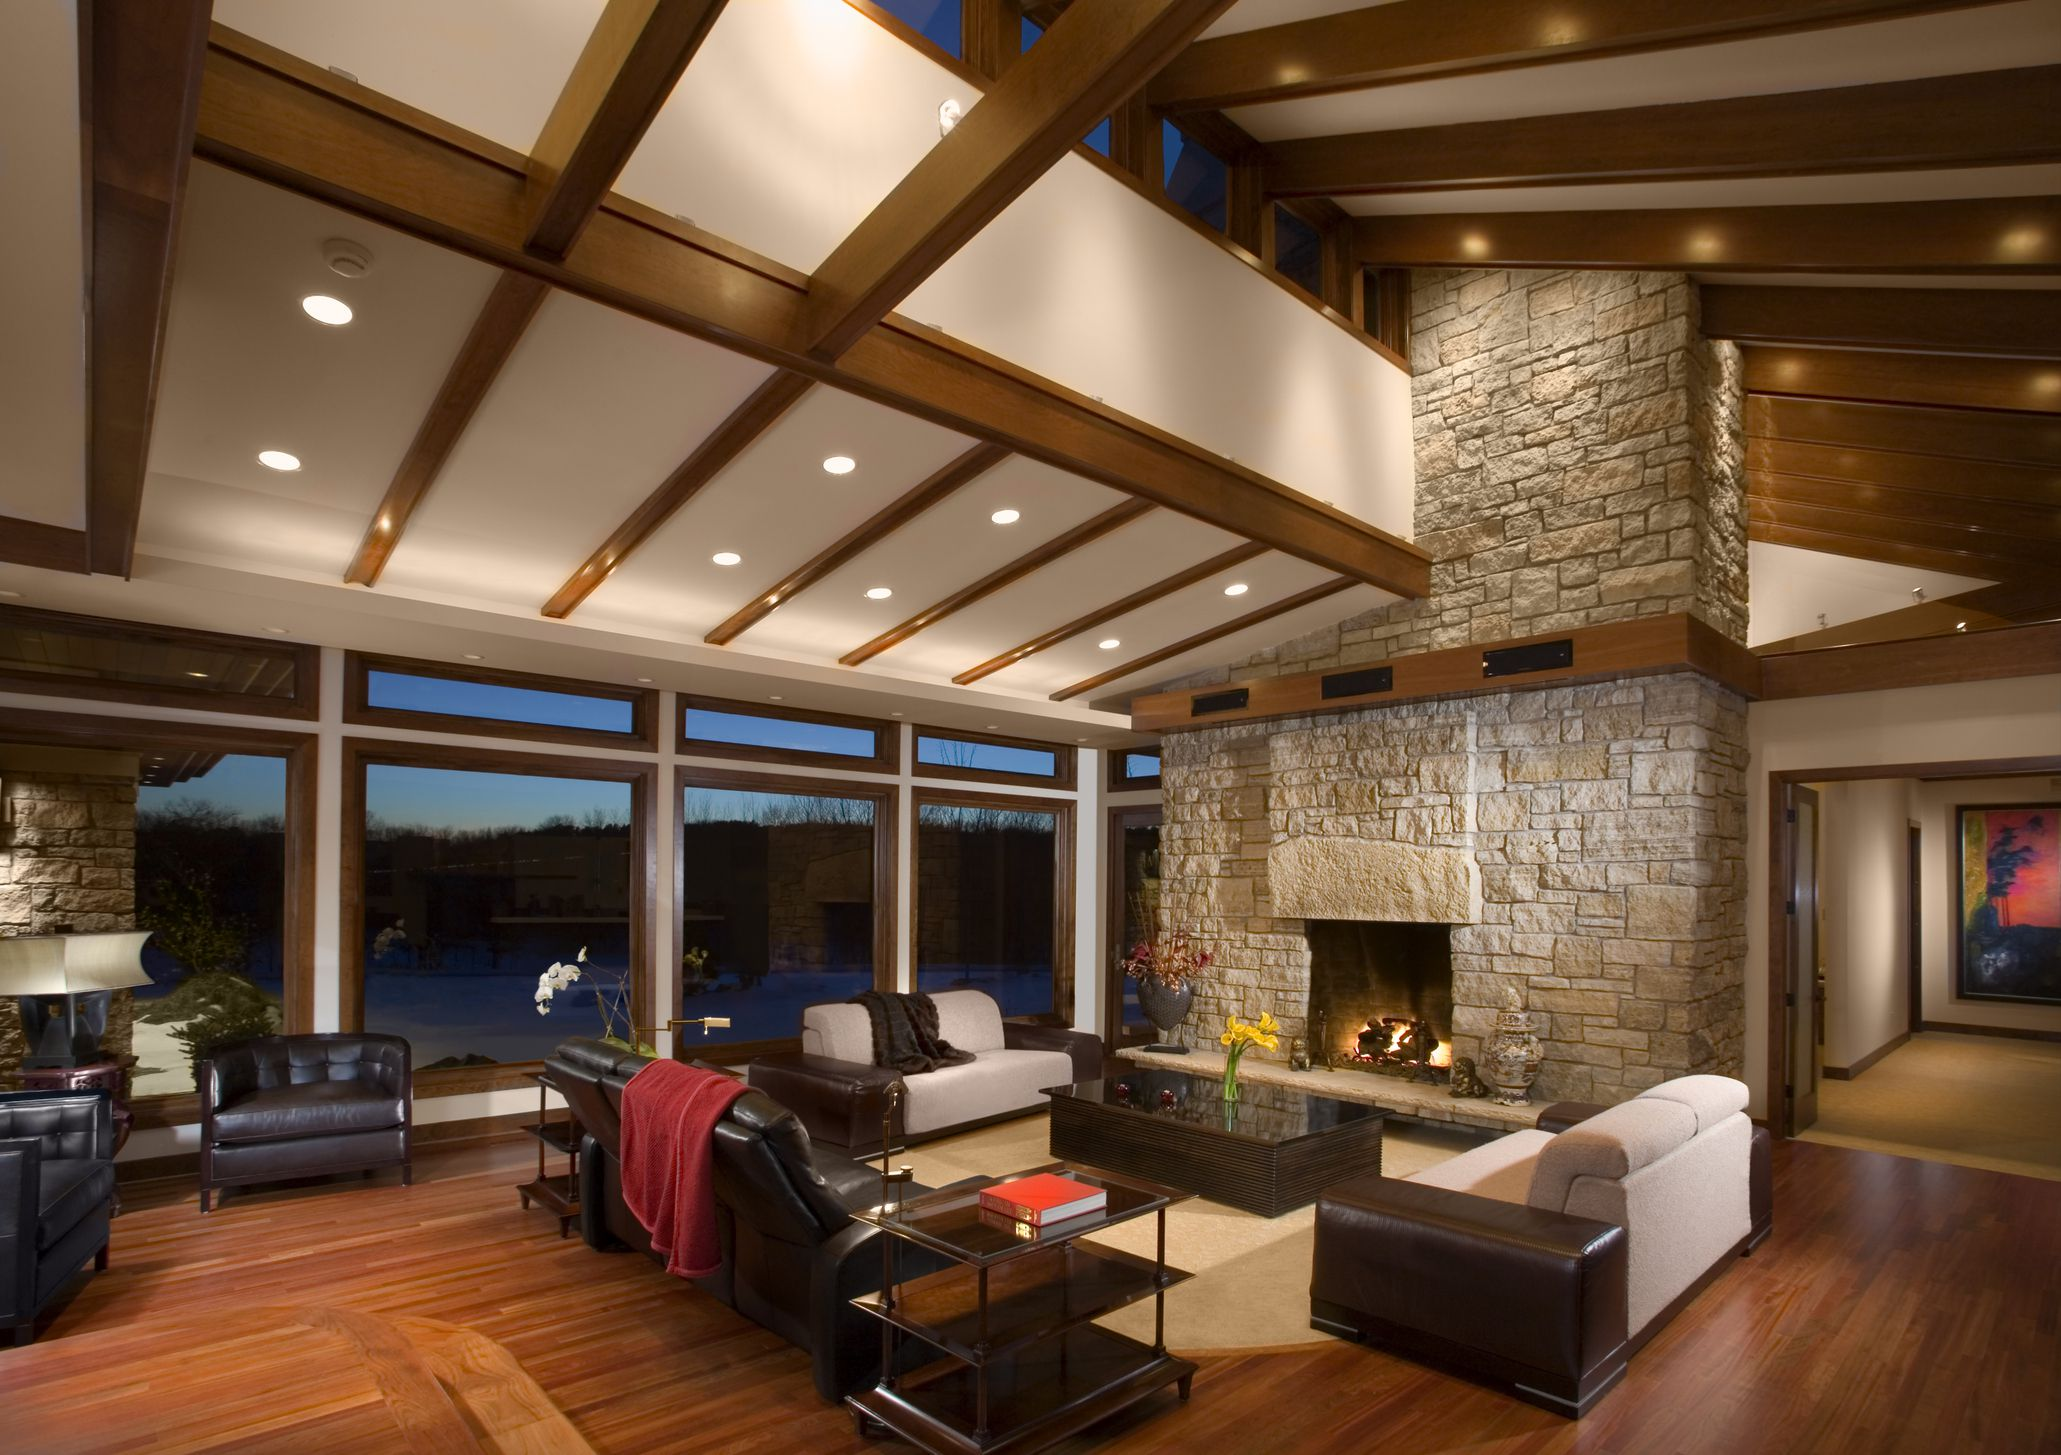 Vaulted ceilings pros and cons myths and truths for The living room drop in center